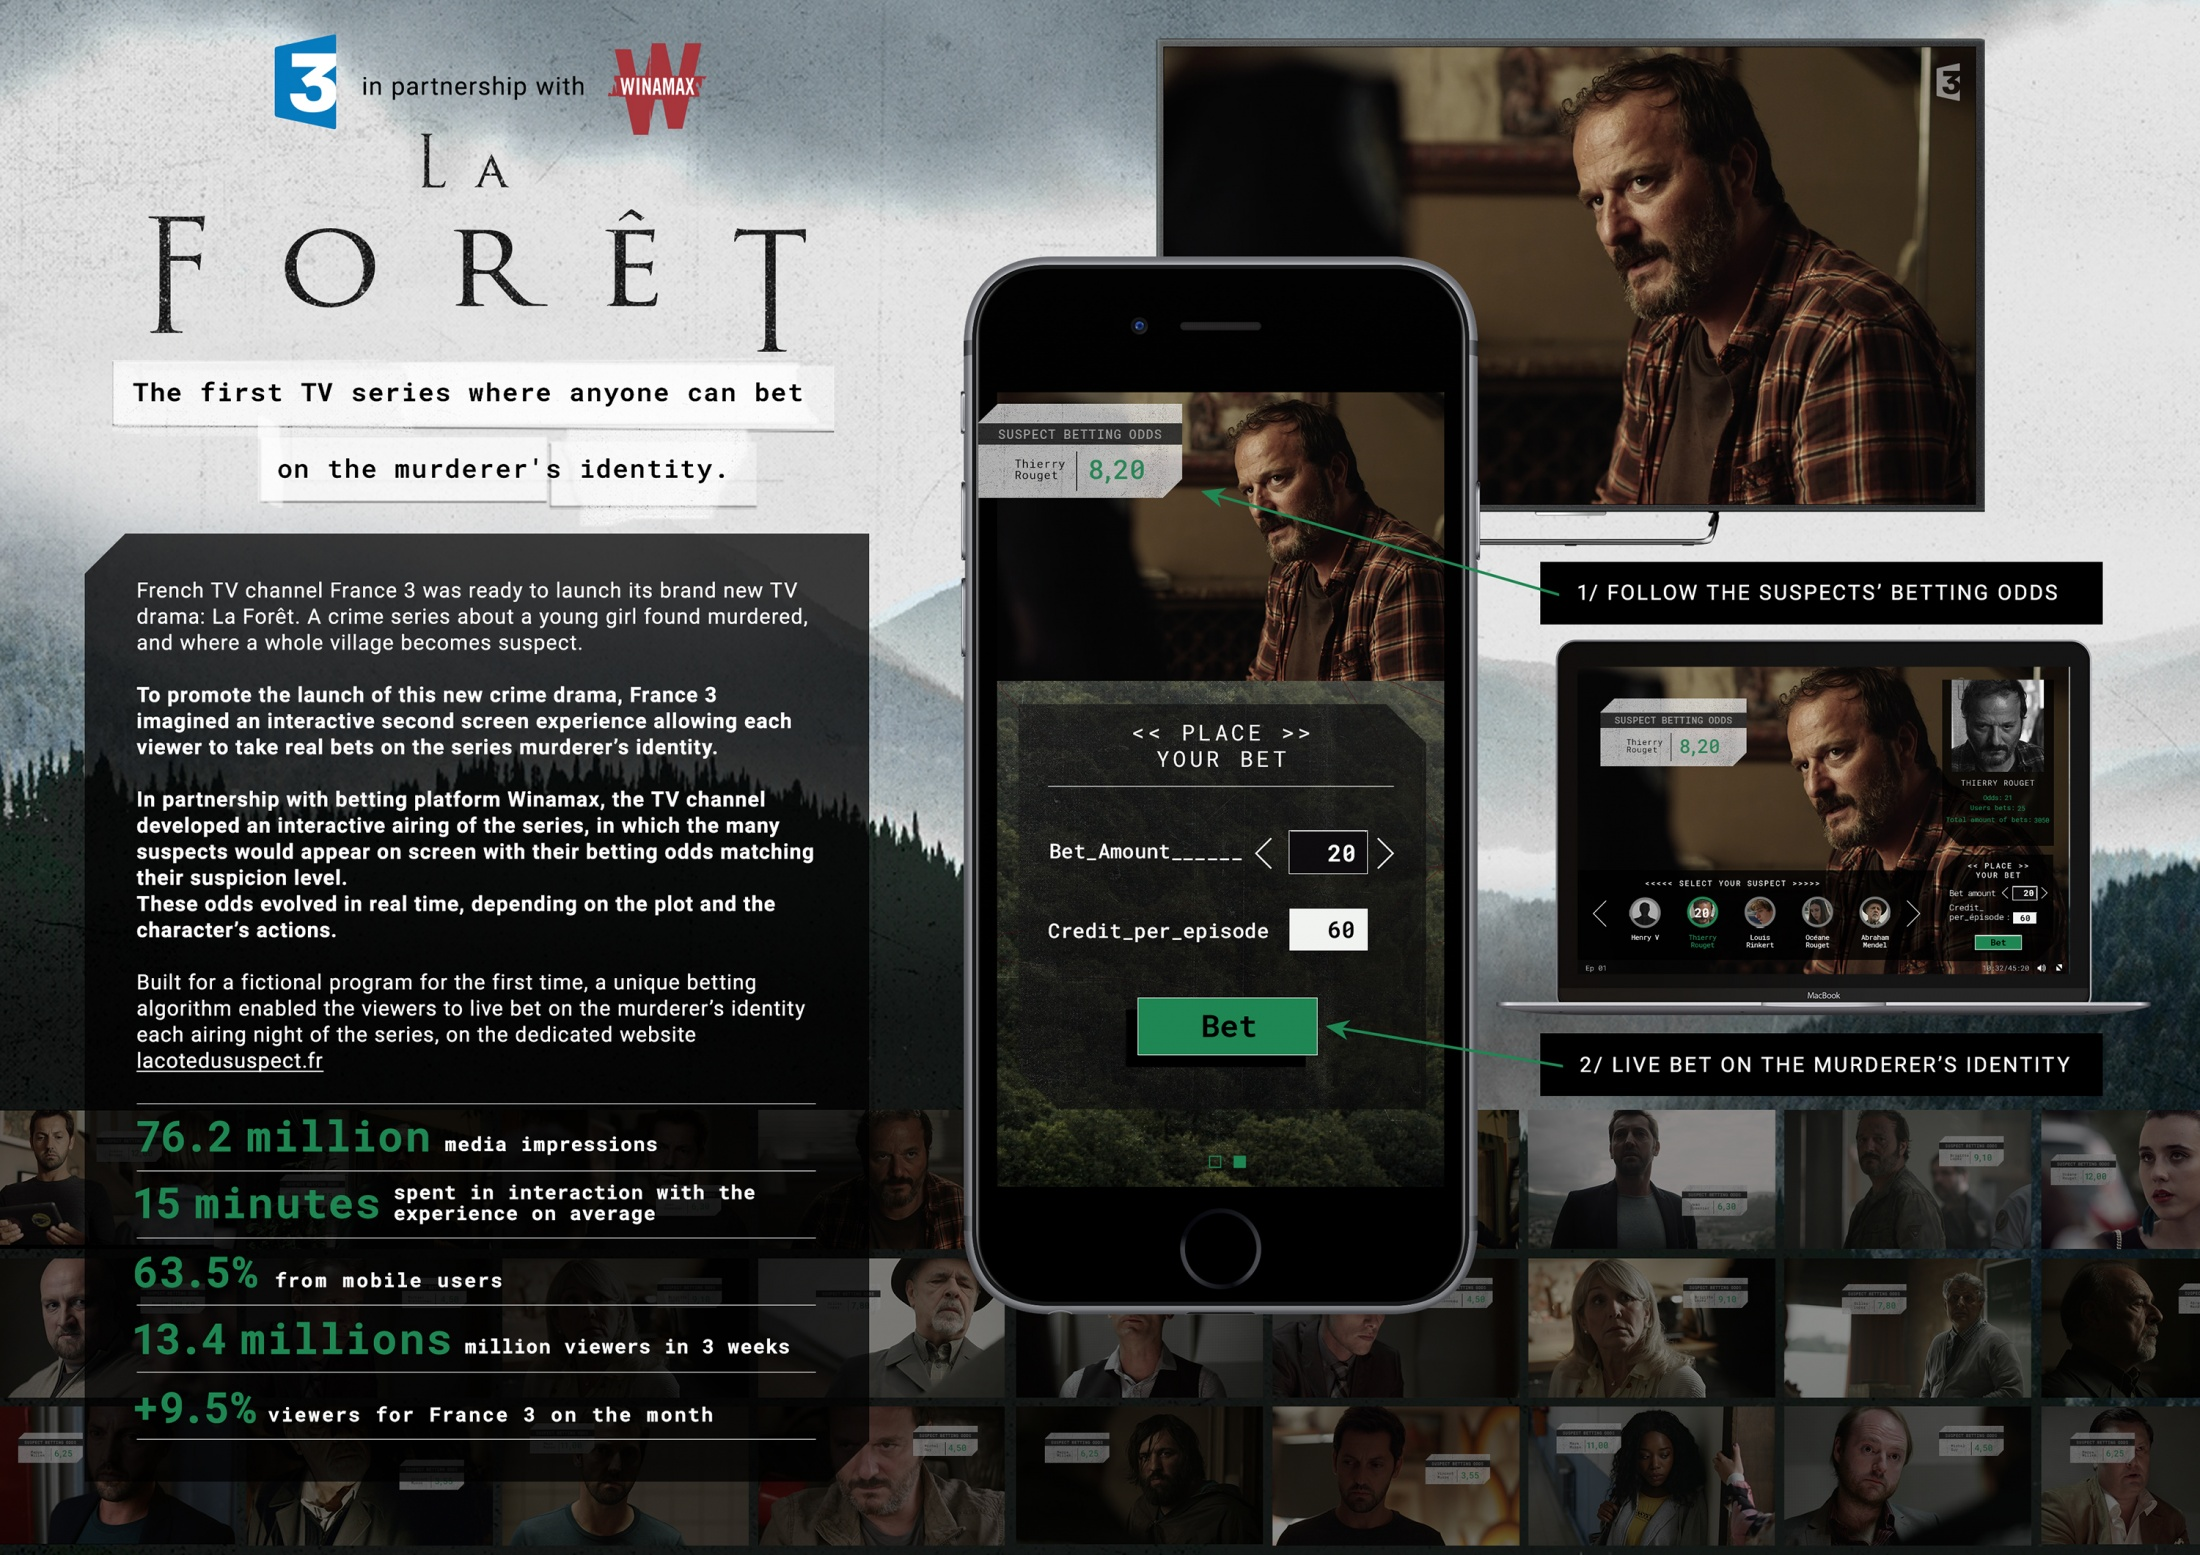 Image Media for LA FORÊT - BET ON A MURDERER